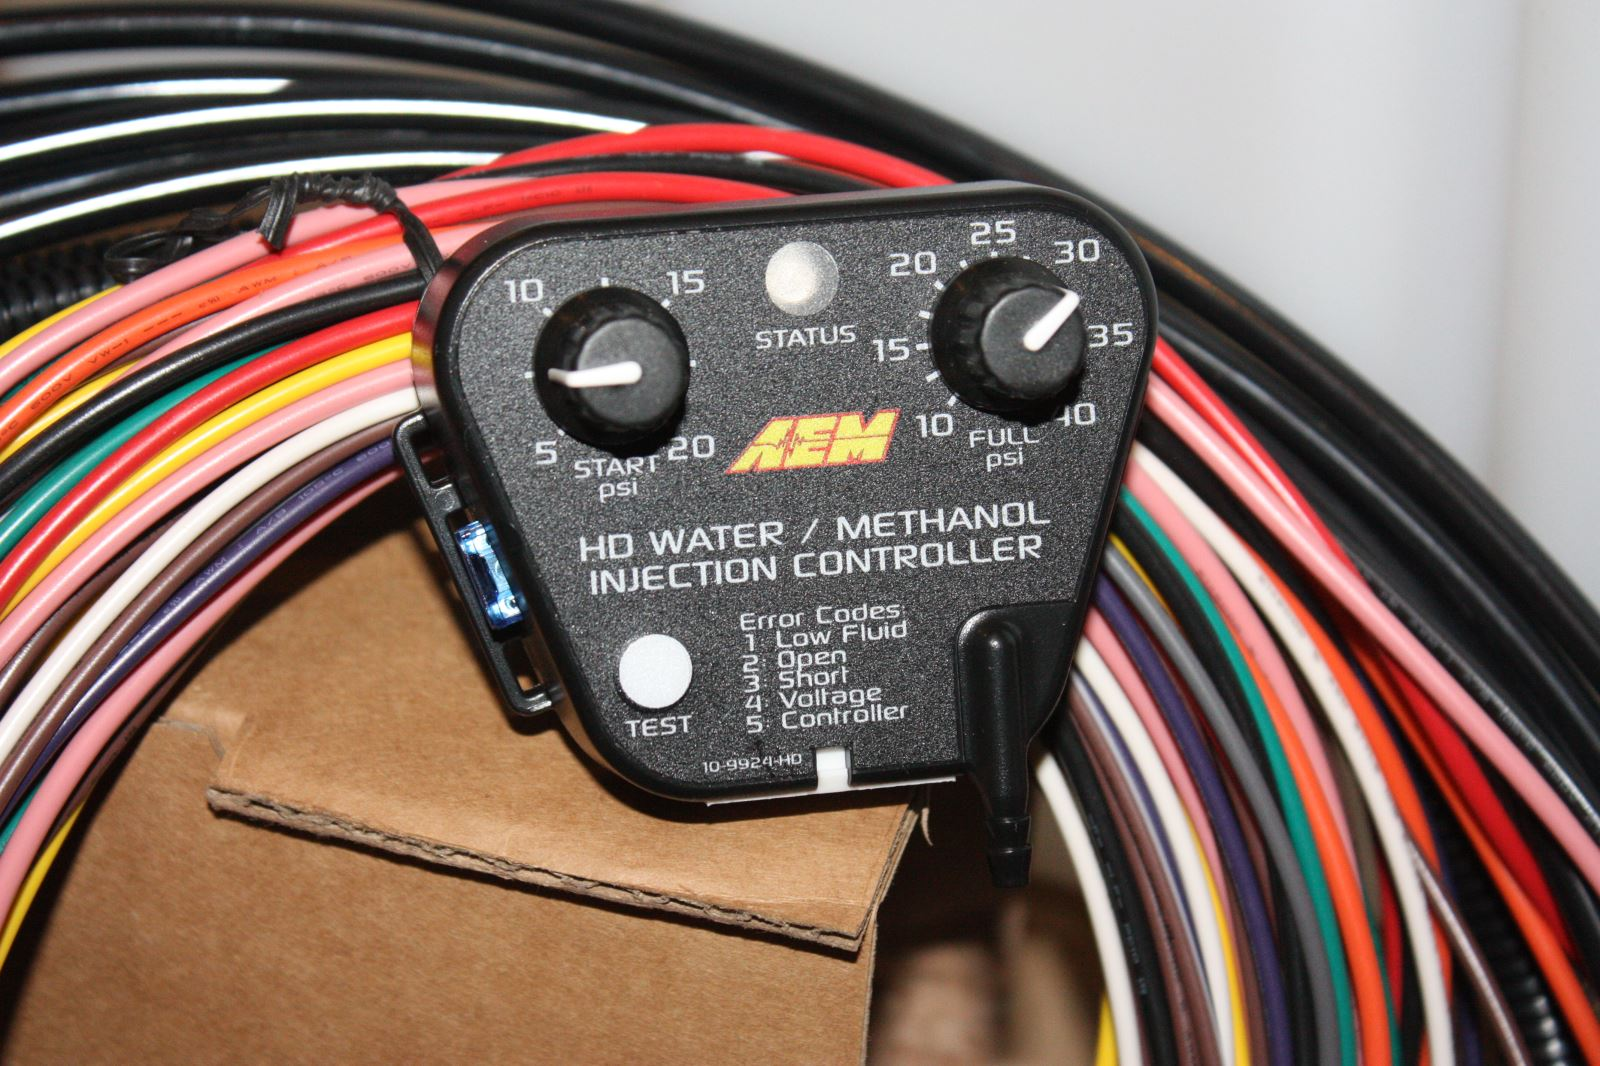 Water Injection Aem Power Diesel Tech Magazine 4r100 Wiring Harness Clip For More Information On These Kits And Other Products Like Its Brute Force Intakes Visit Aempowercom Or Call 310 484 2322